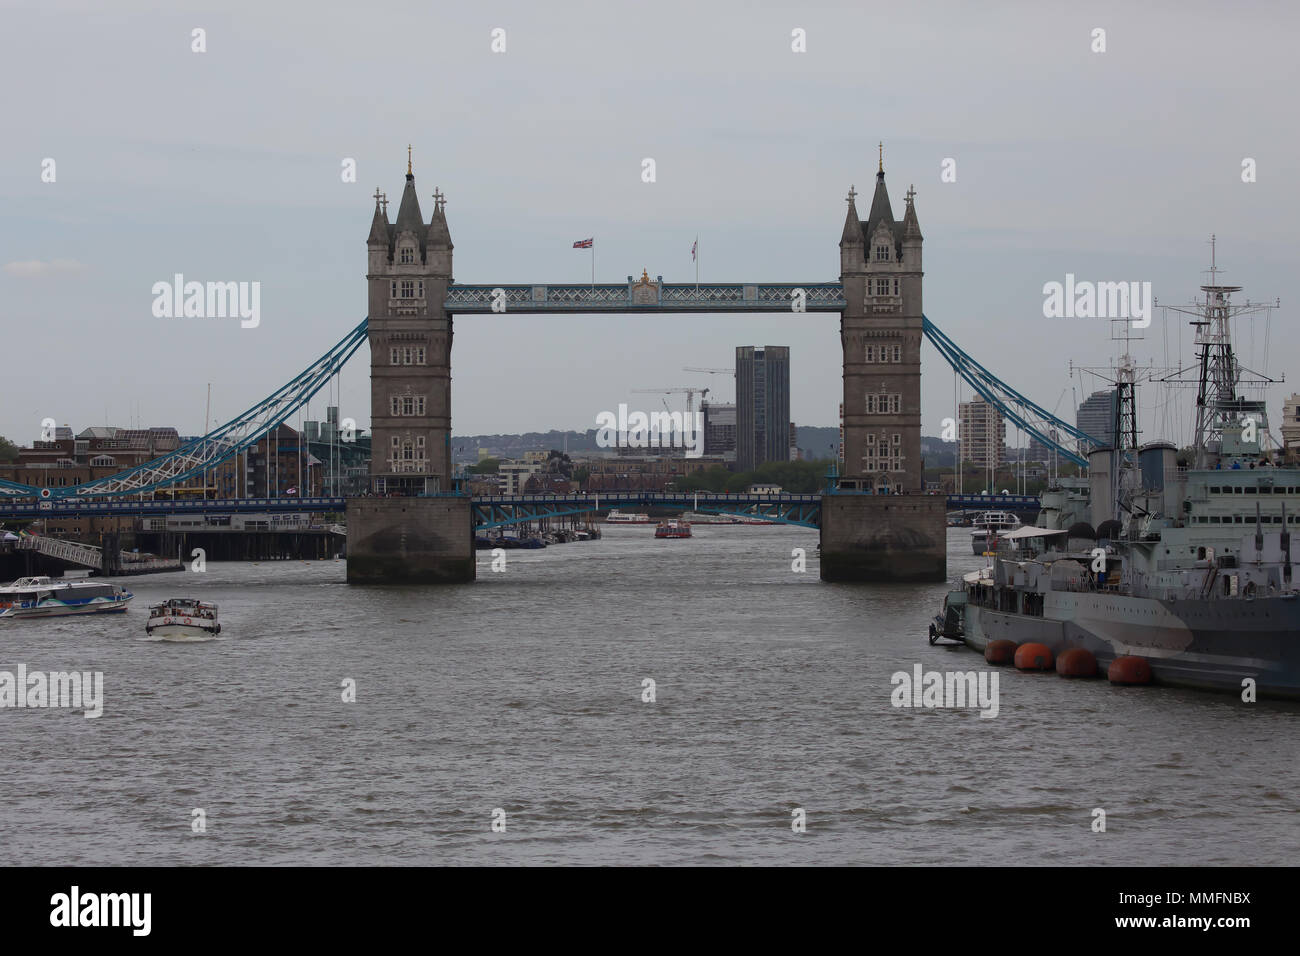 London,UK,11th May 2018,People enjoy the Cloudy warm weather in London  Credit Keith Larby/Alamy Live News - Stock Image